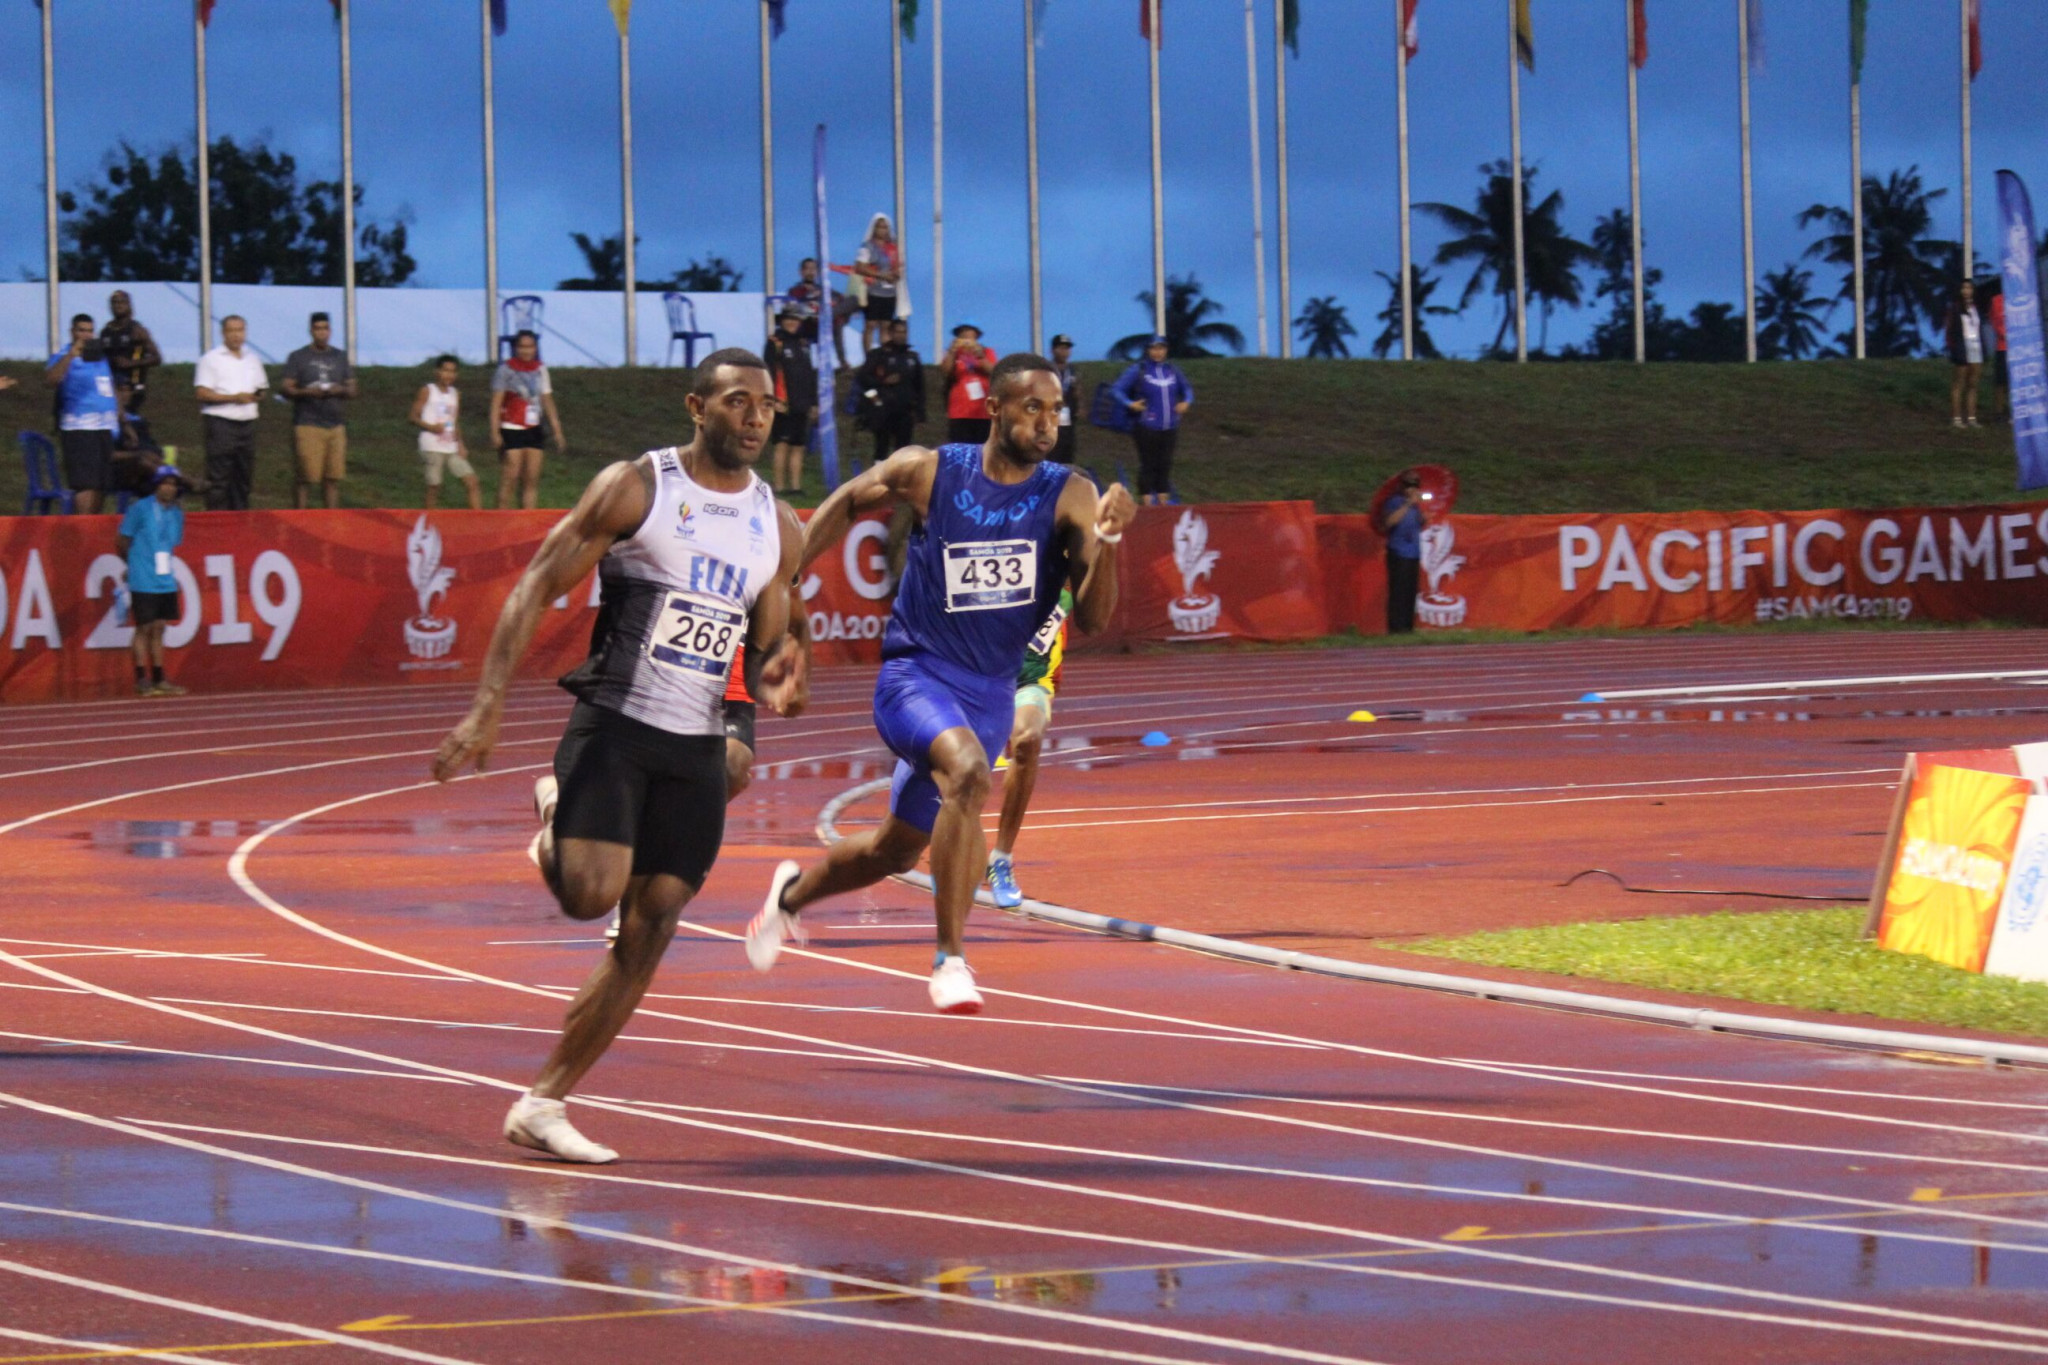 Fiji's Banuve Tabakaucoro won the men's 200m after a brilliant race with Samoa's Jeremy Dodson ©Samoa 2019